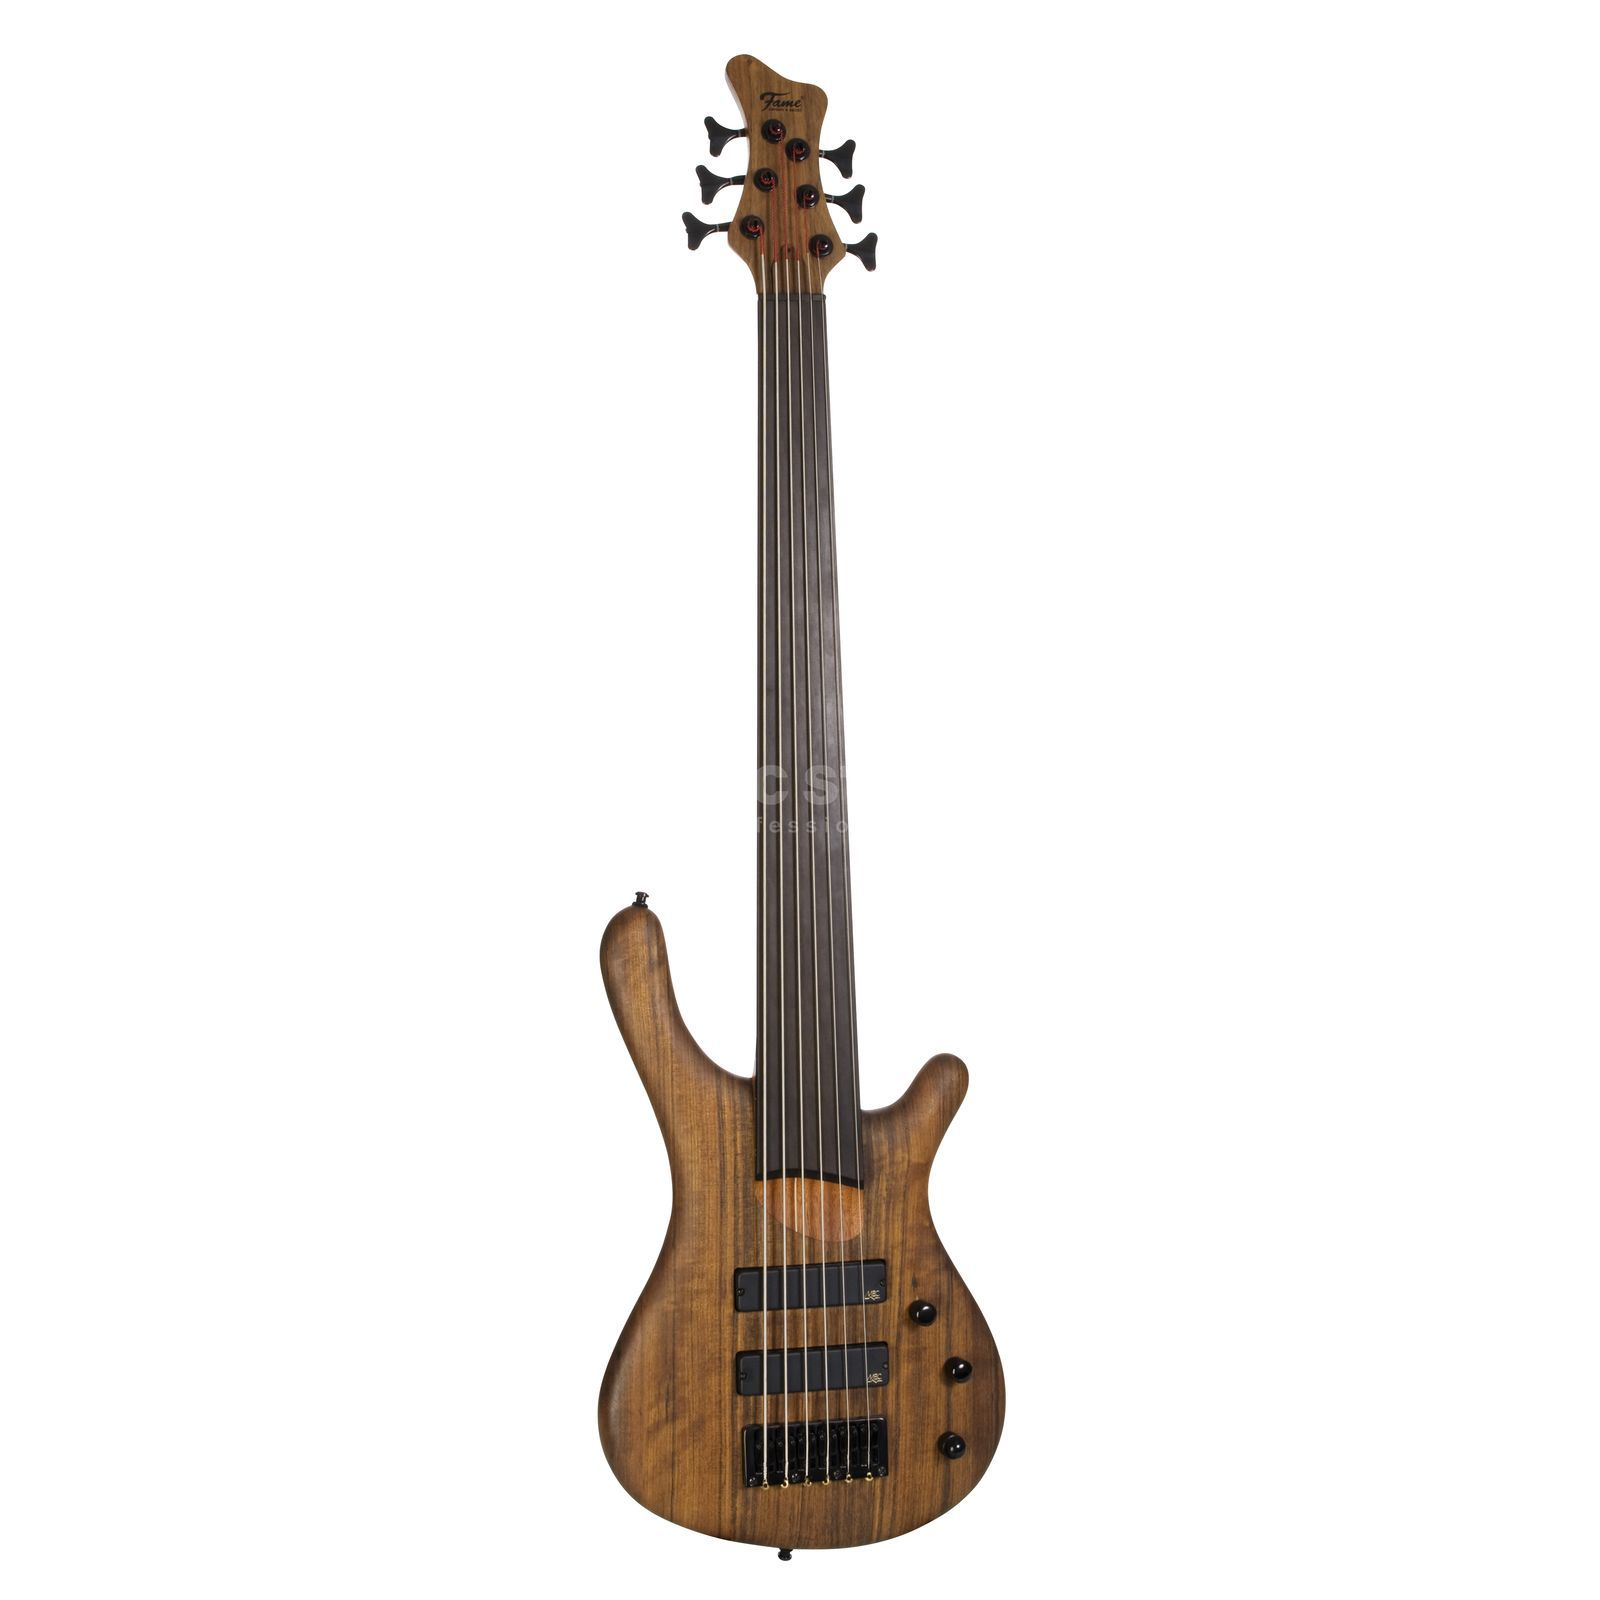 Fame Baphomet 6 Fretless NT 6-Strin g, E-Bass Guitar, Natural Изображение товара